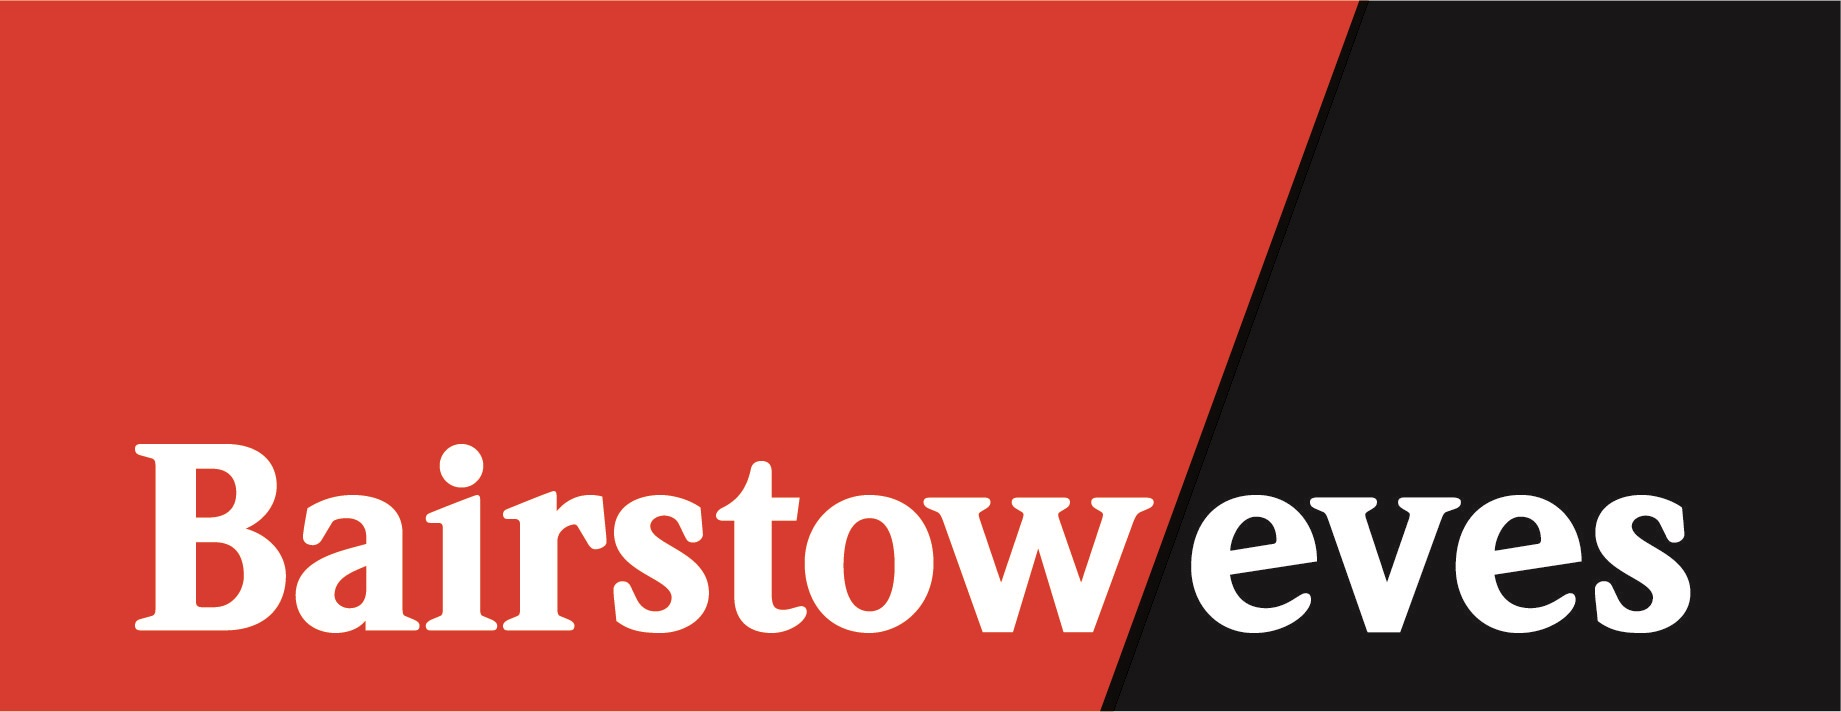 CW - Bairstow Eves - Collier Row